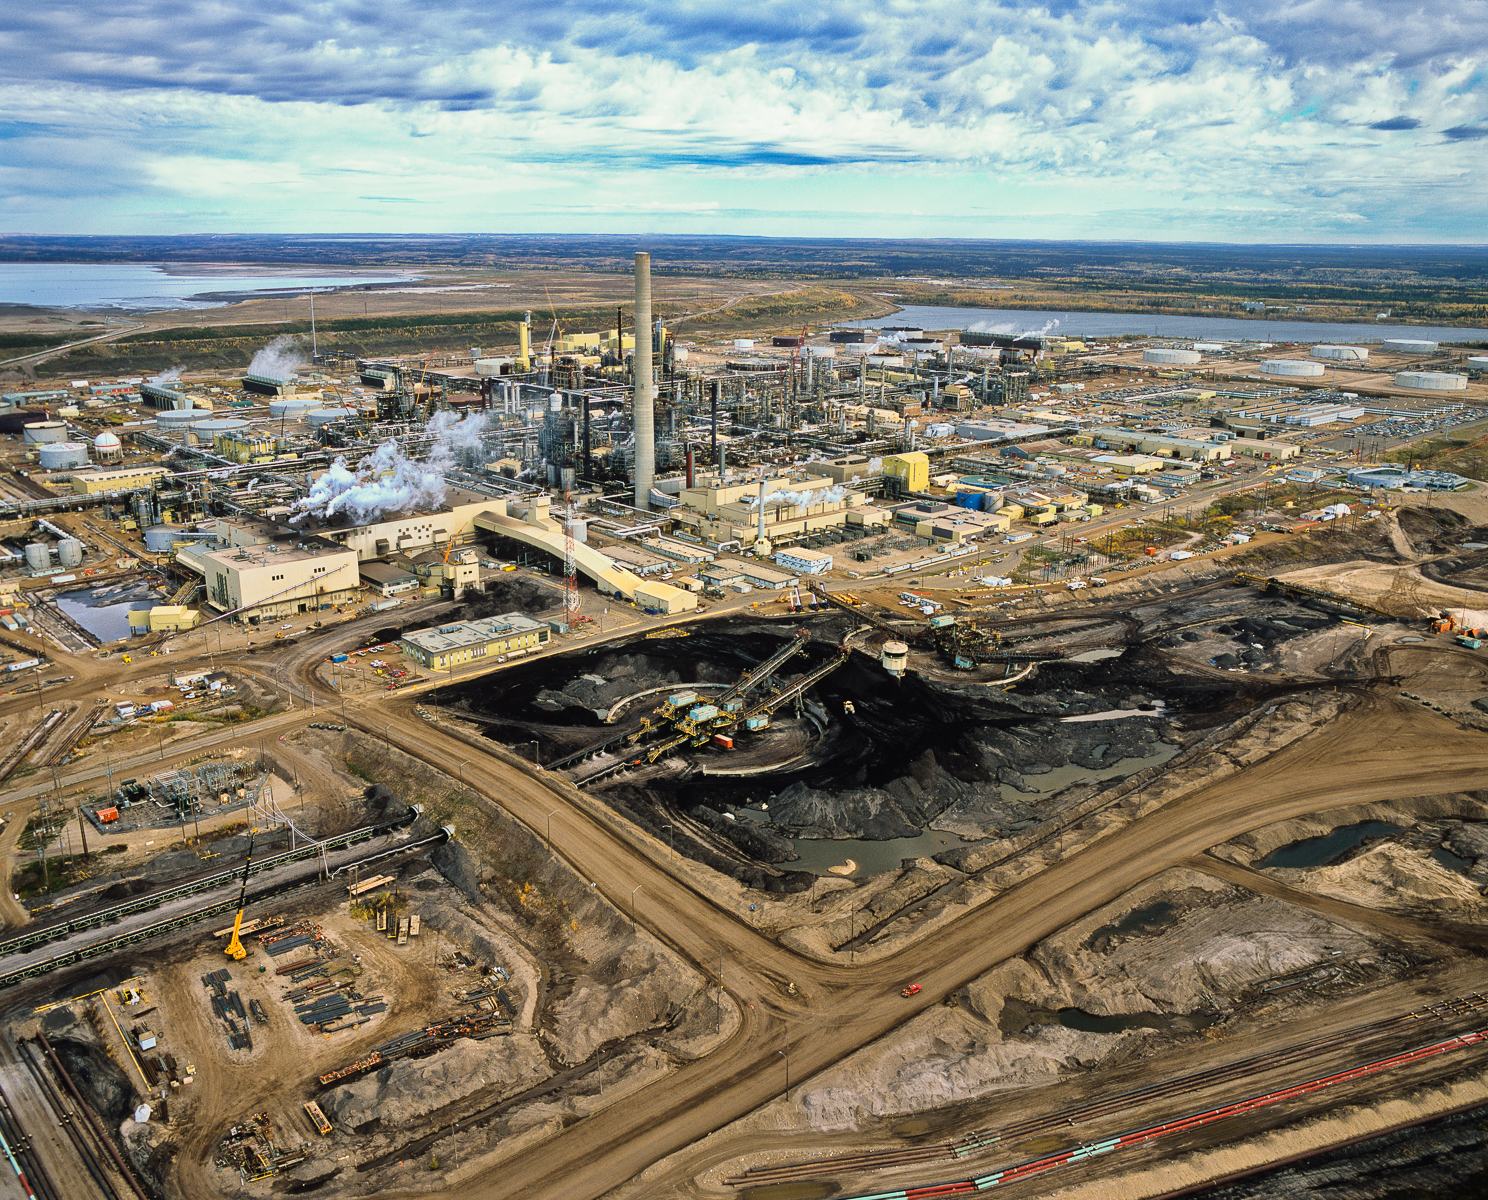 """The refining or upgrading of the tarry bitumen which lies under the the boreal forests and wetlands of Northern Alberta consumes more water and energy than conventional oil production and produces more carbon. Each barrel of oil requires 3-5 barrels of fresh water from the neighboring Athabasca River. About 90% of this is returned as toxic tailings into the vast unlined tailings ponds that dot the landscape.Fine Art Prints:All prices in U.S. dollars.Prices are for prints only and do not include tax or shipping.16""""x20""""          edition of 25  /  $100020""""x24""""edition of 15  /  $150030""""x40""""edition of 10  /  $350040""""x50                    edition of 6   /   $6000"""